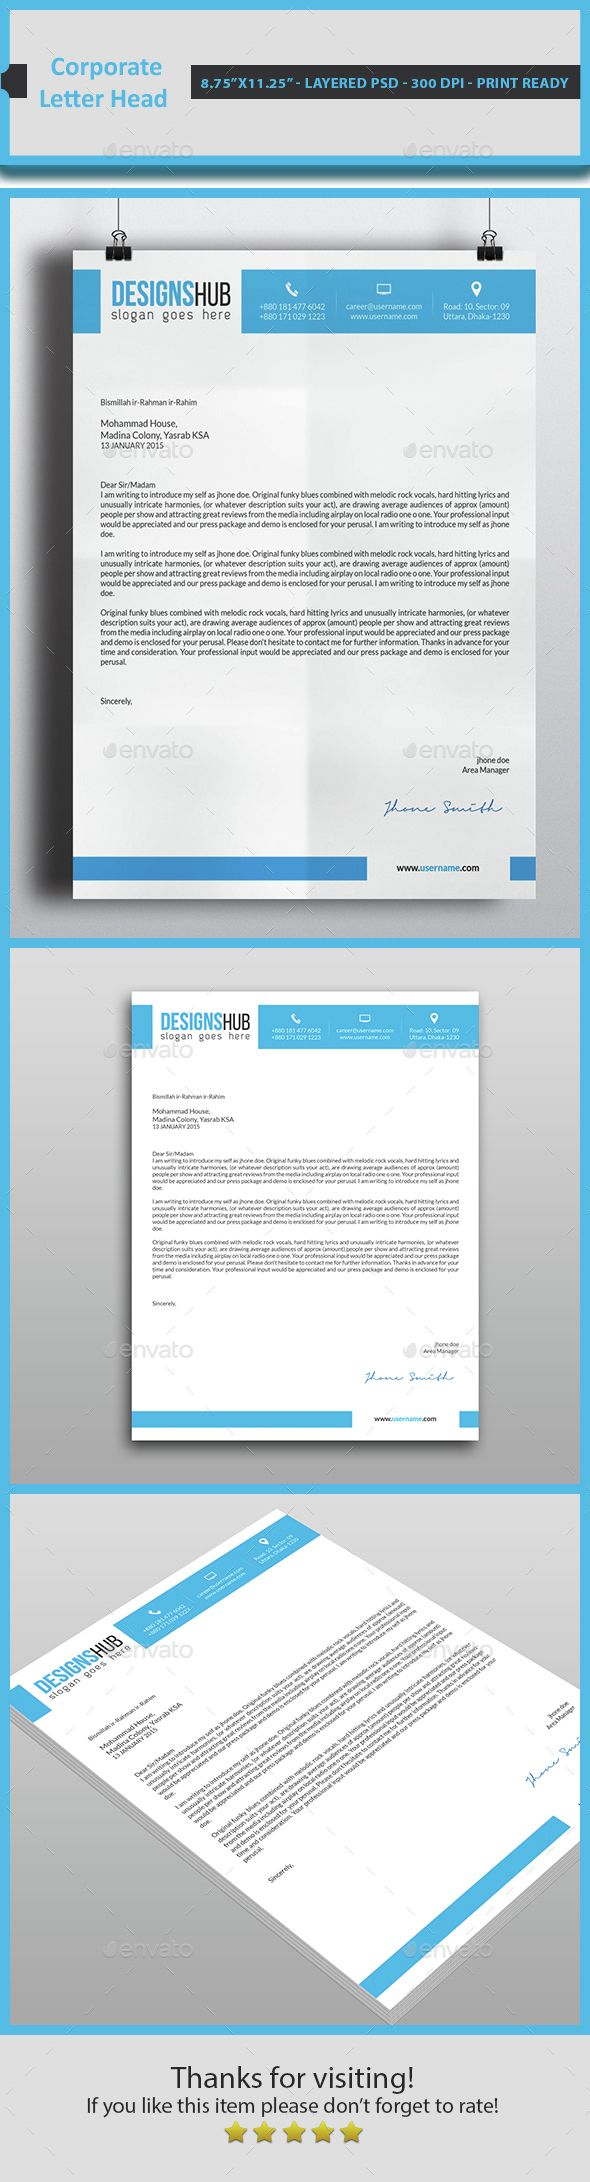 Best business letter head ideas pinterest letterhead templates for best business letter head ideas pinterest letterhead templates for all types see more corporate headwnload here thecheapjerseys Gallery